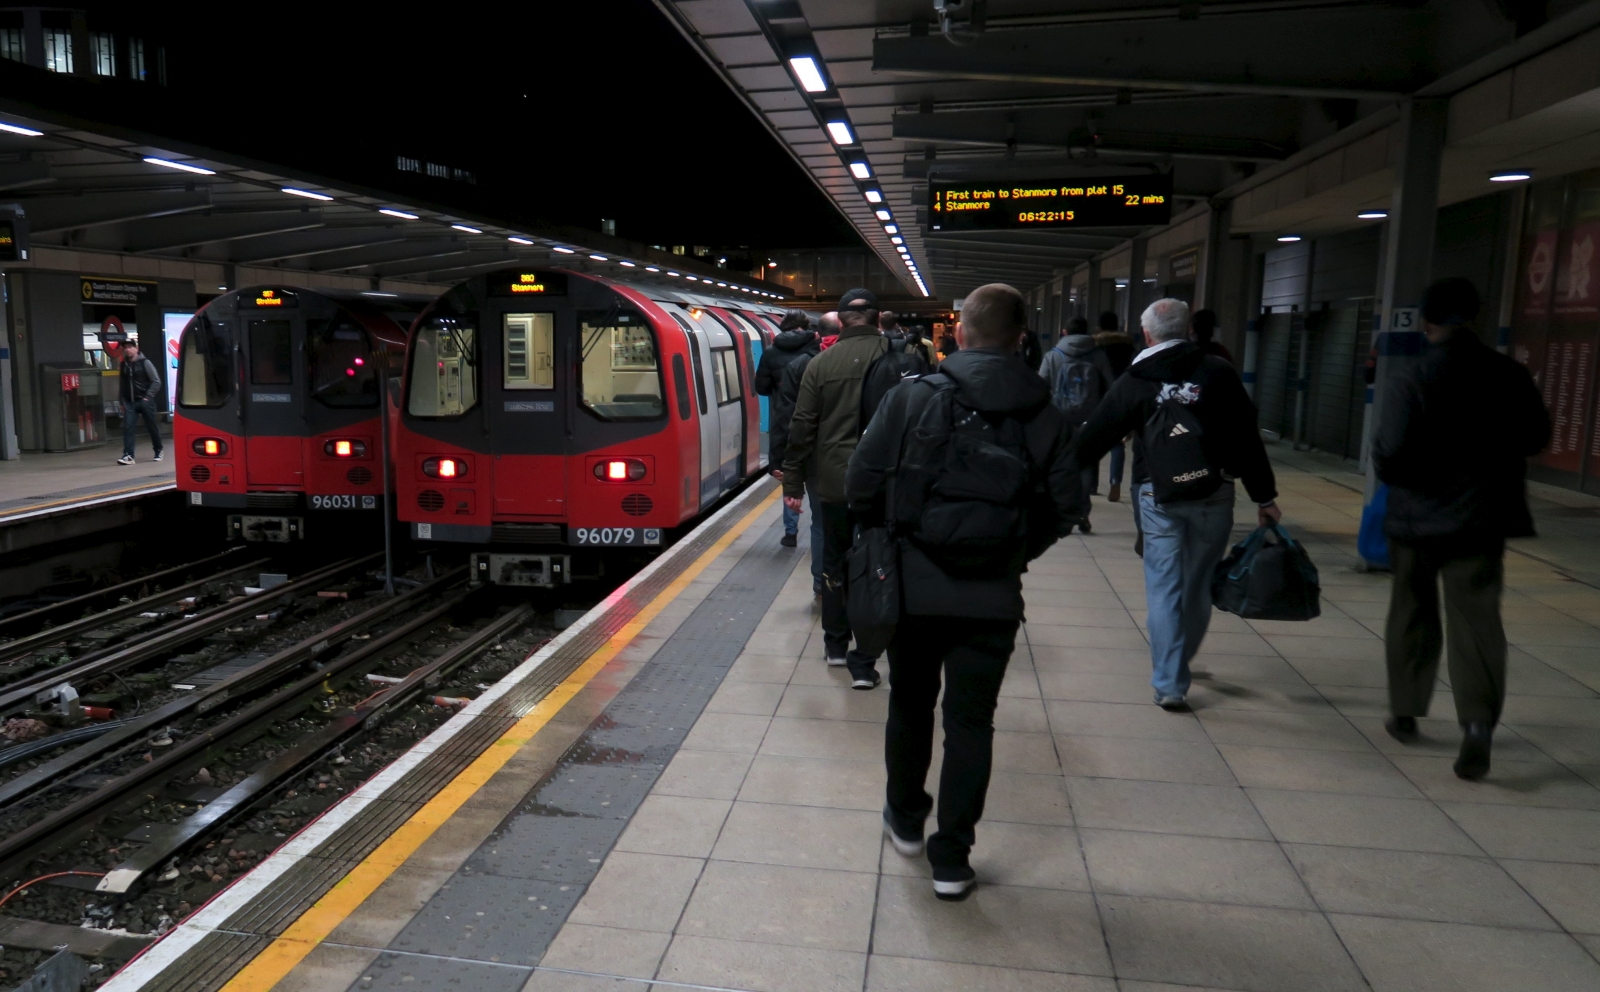 Tube trains, industrial machinery and geothermal energy could soon heat UK homes